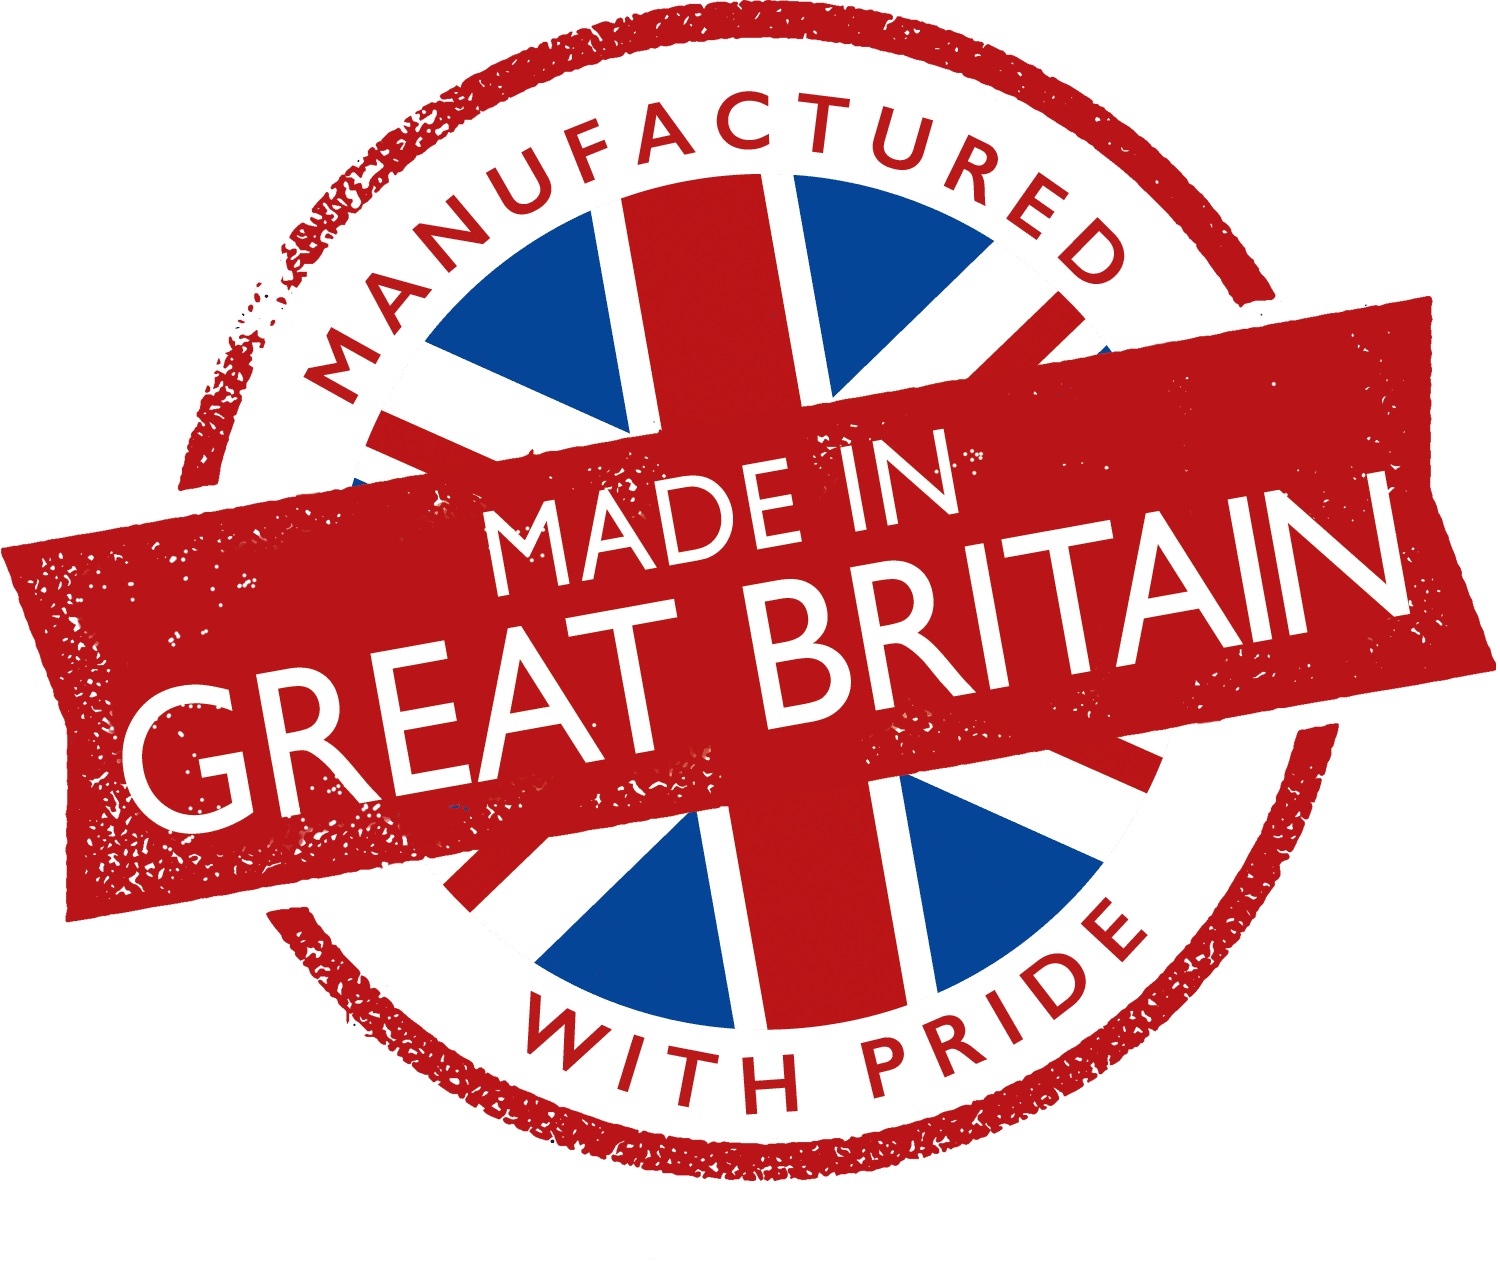 Made in Great Britain - Manufactured with Pride